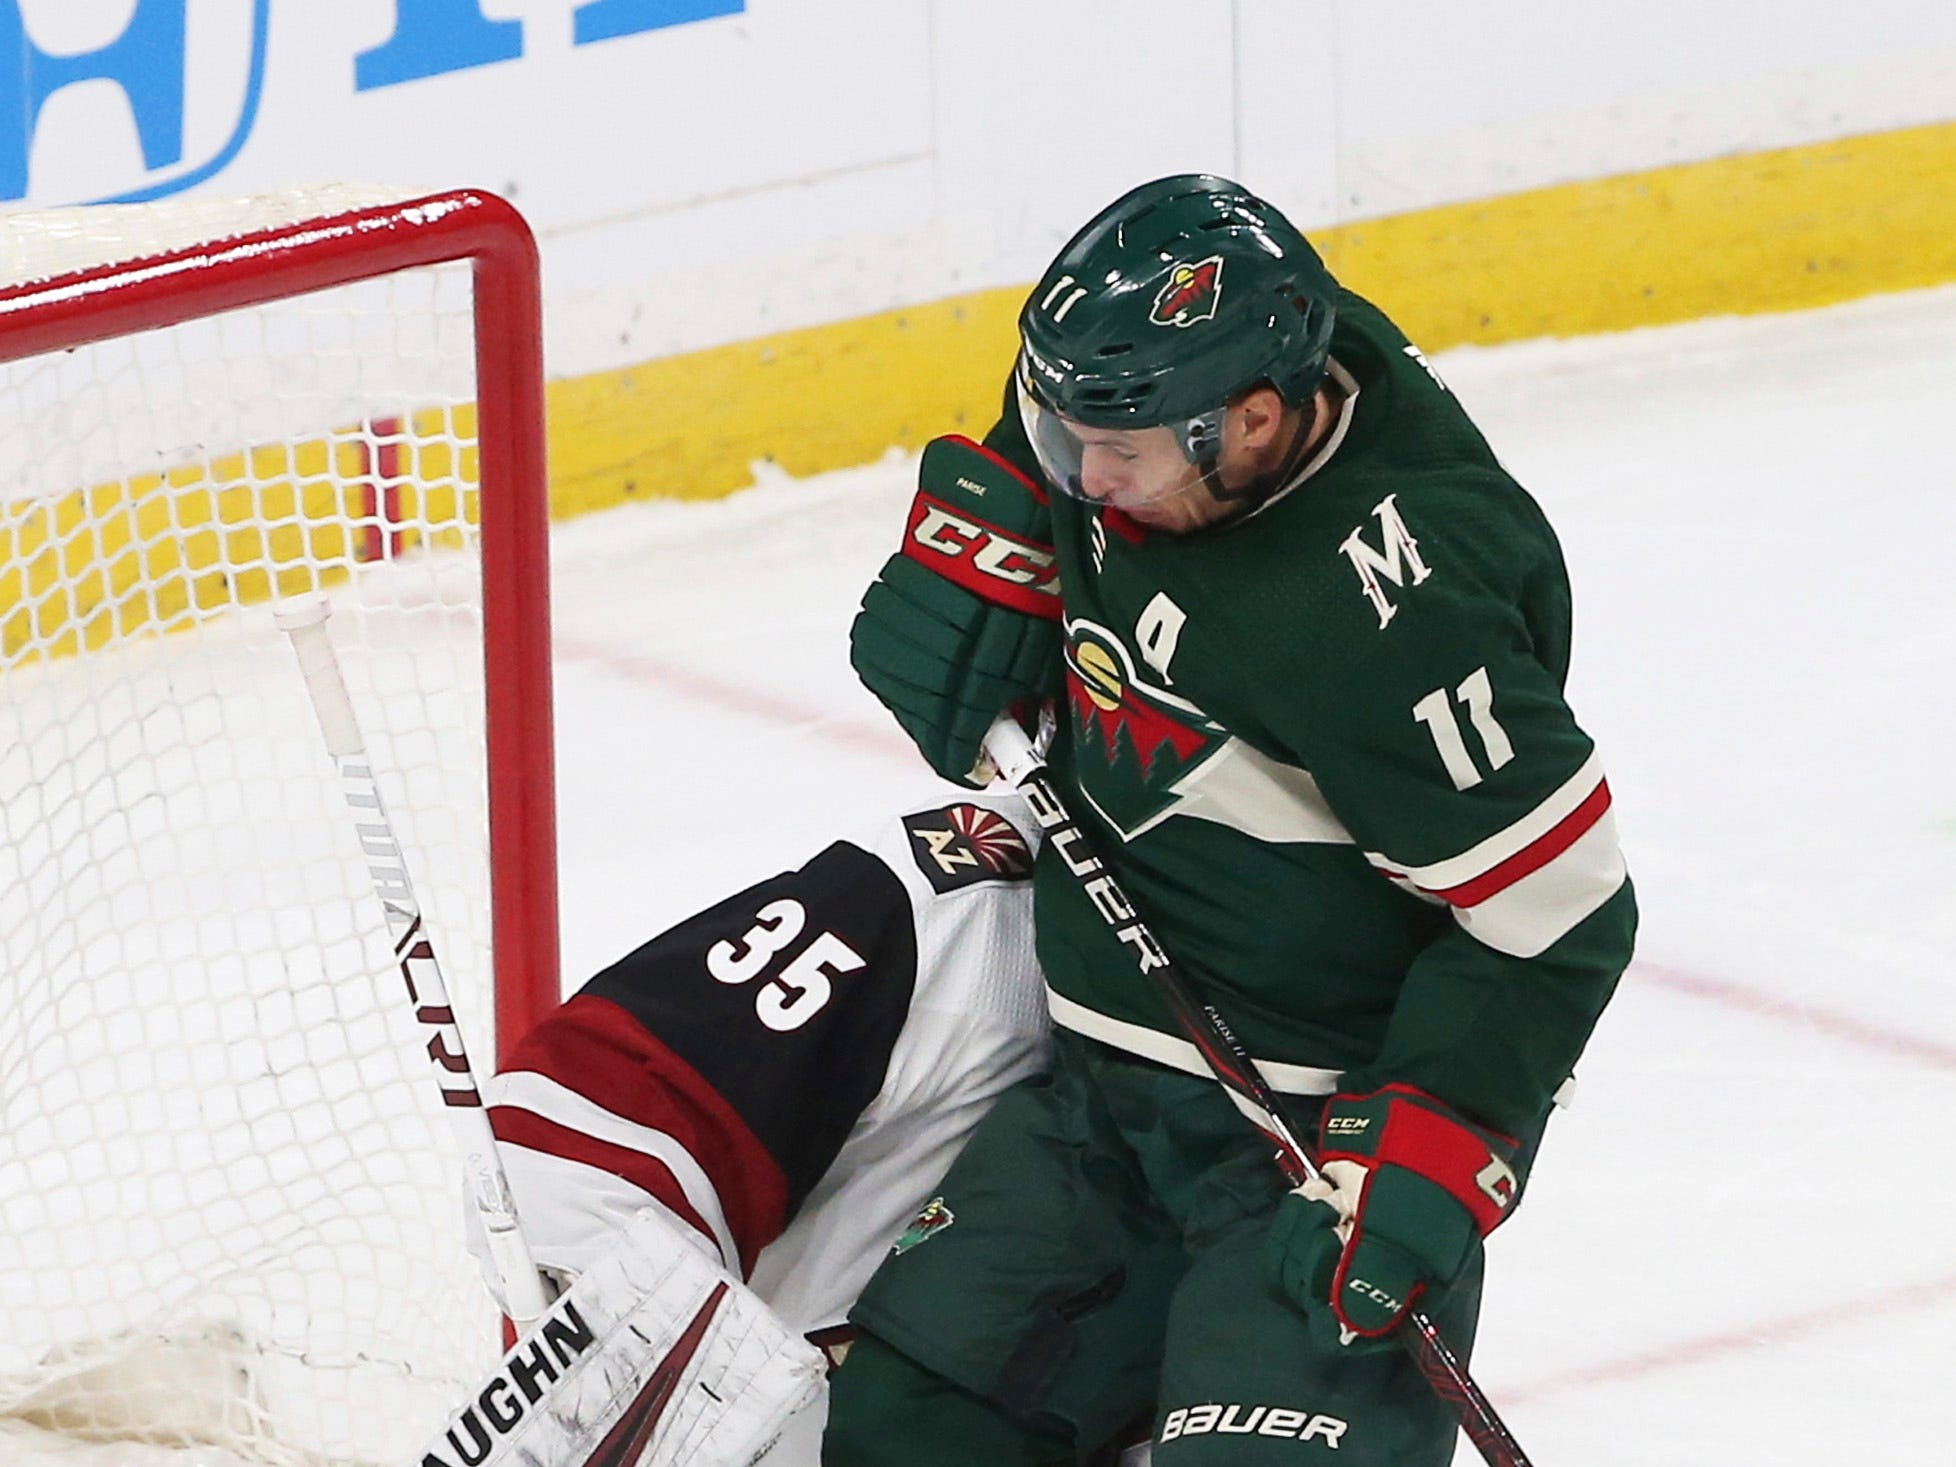 Minnesota Wild's Zach Parise, right, jumps clear and into Arizona Coyotes' goalie Darcy Kuemper to make way for a shot in the first period of an NHL hockey game Tuesday, Oct. 16, 2018, in St. Paul, Minn.